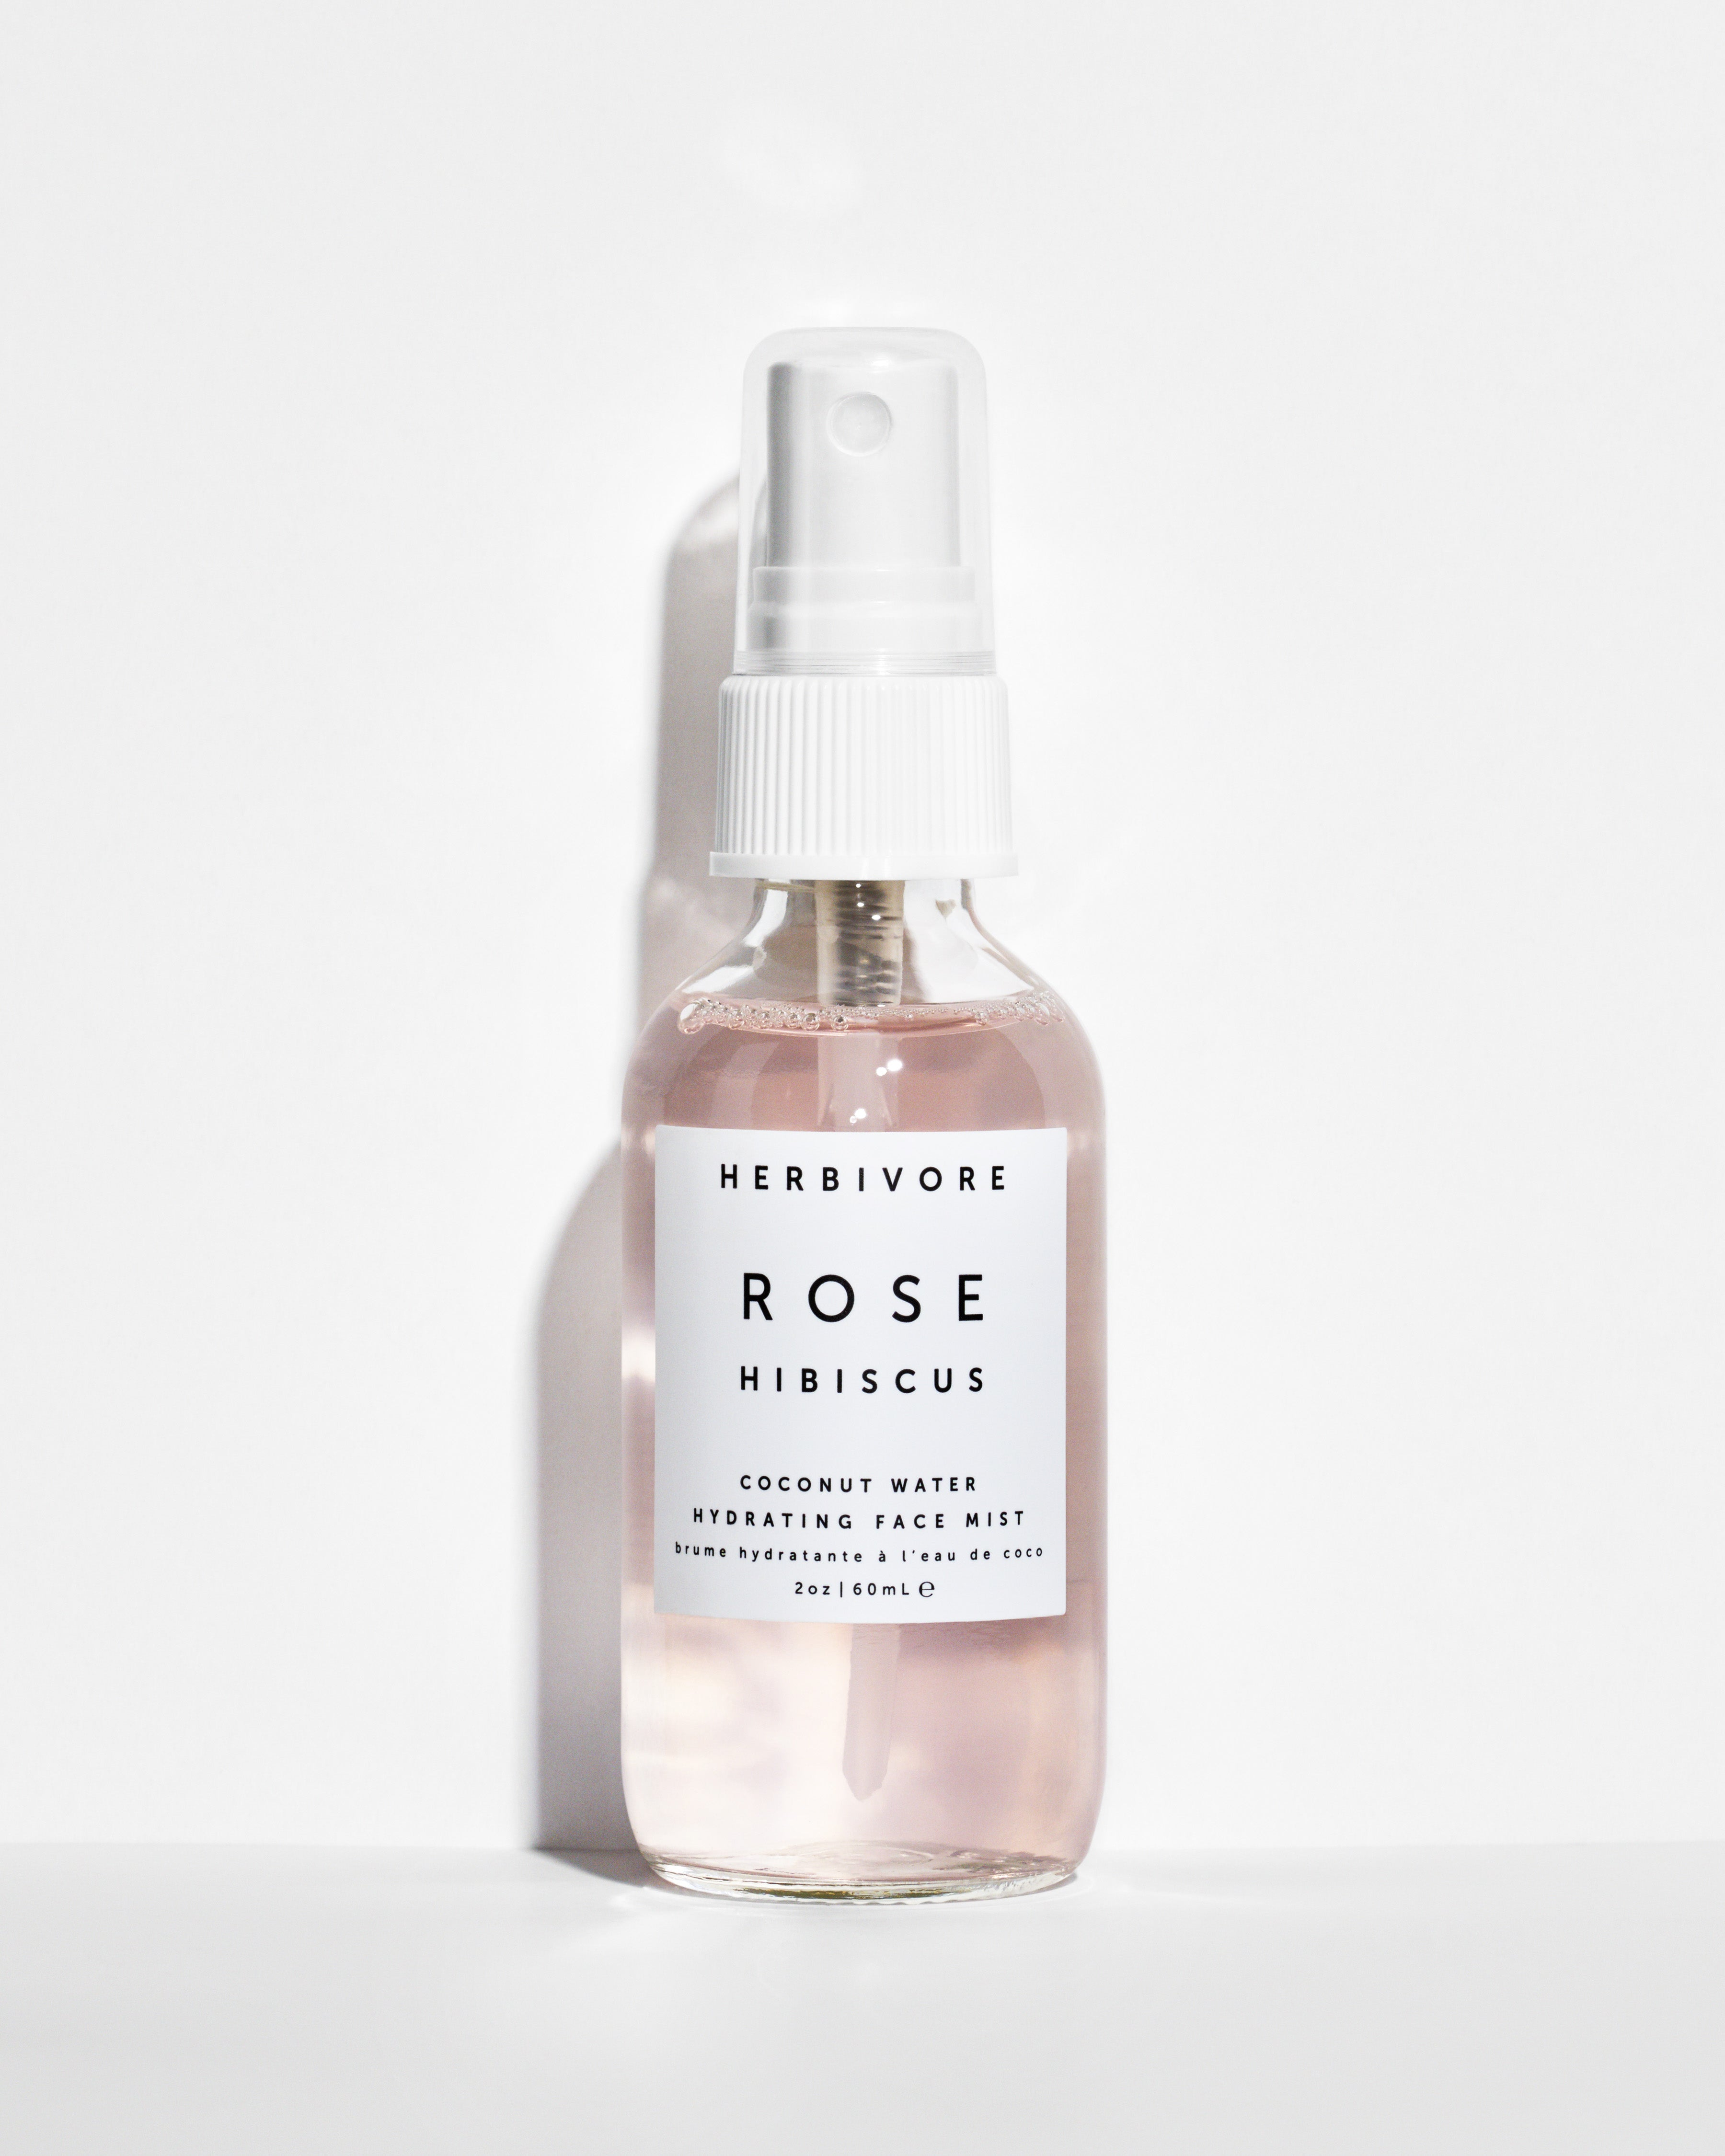 Rose Hibiscus Hydrating Face Mist | 2 oz